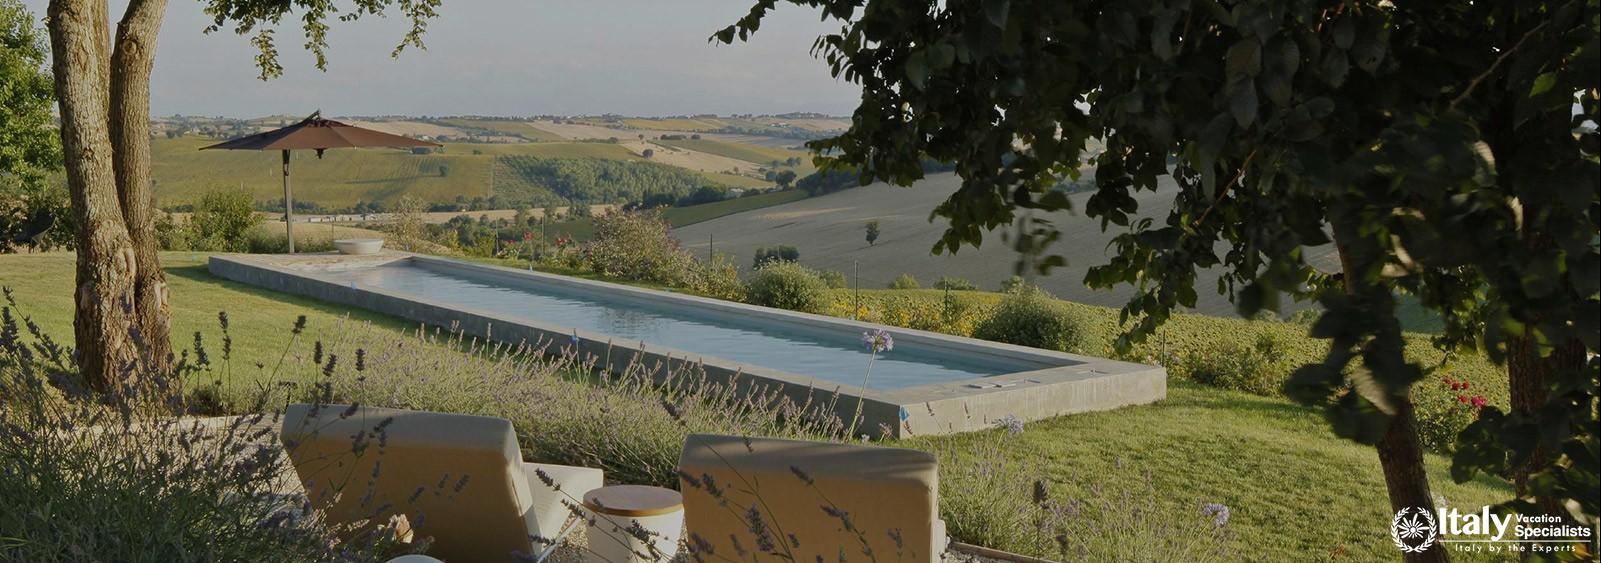 Villa with Pool for Groups in Marche Region Italy